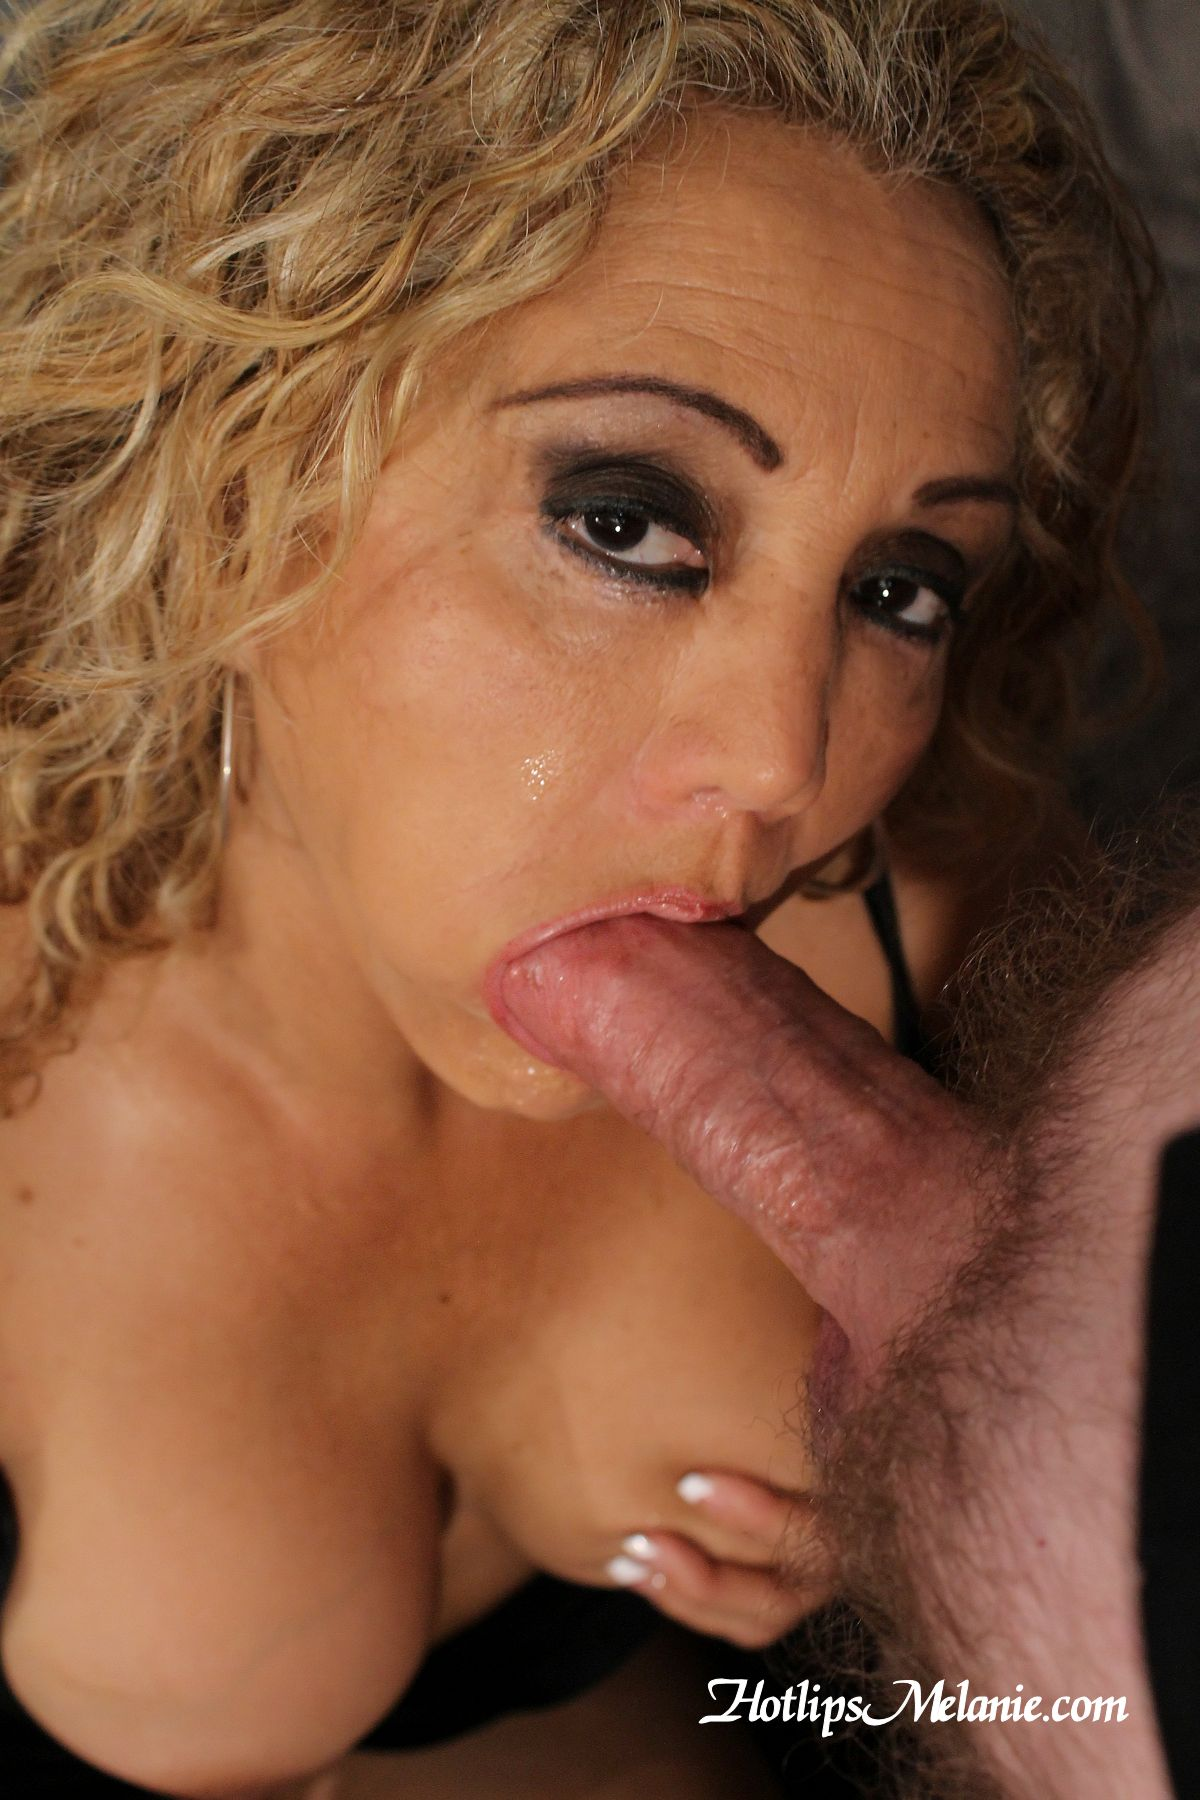 Hot lips blowjob